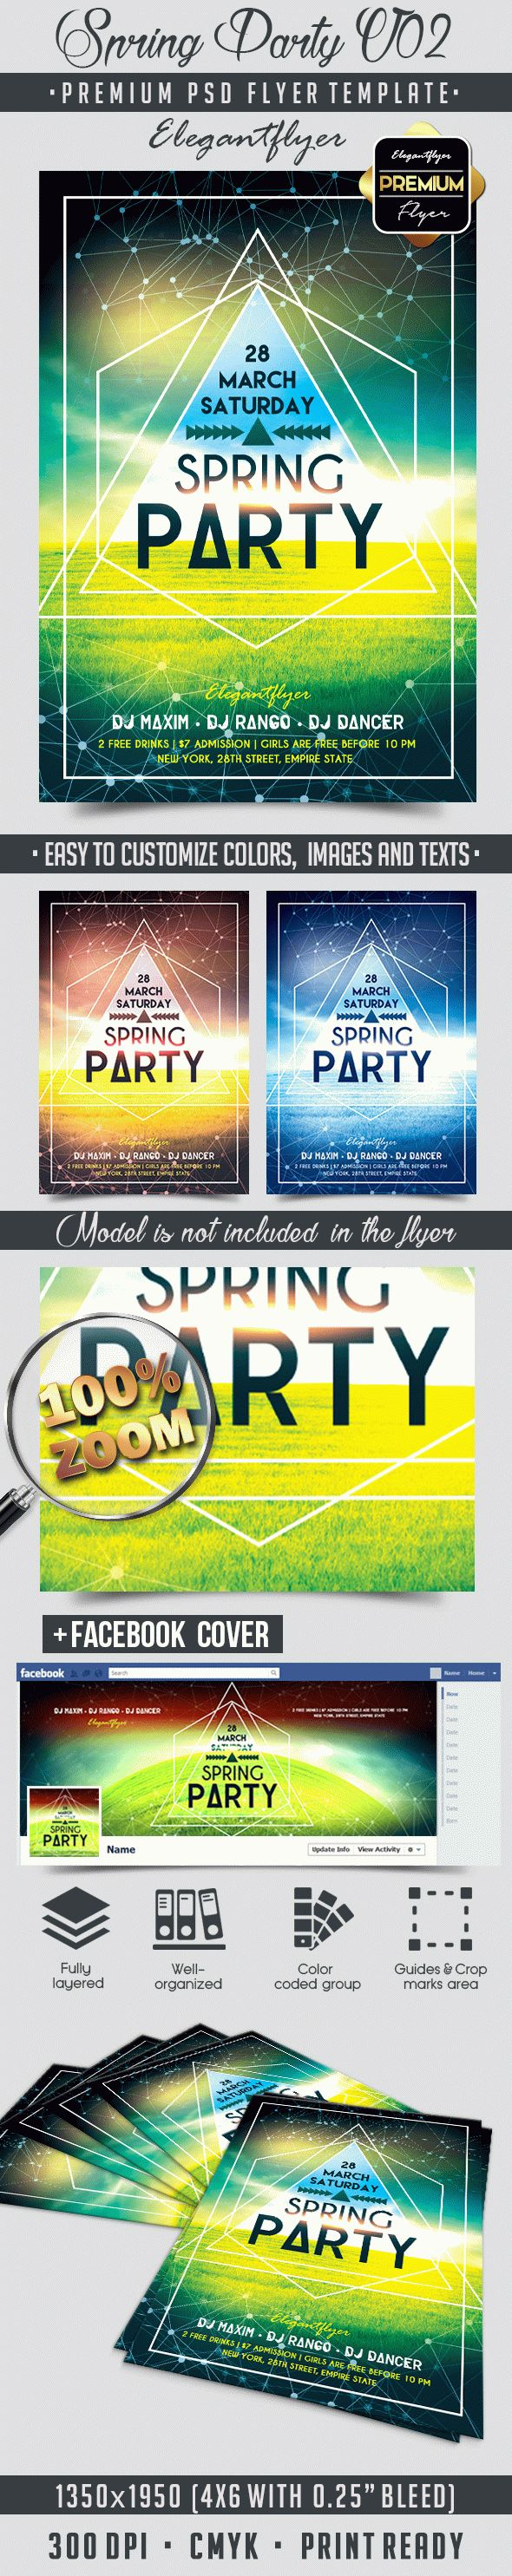 Spring Party V02 – Flyer PSD Template + Facebook Cover